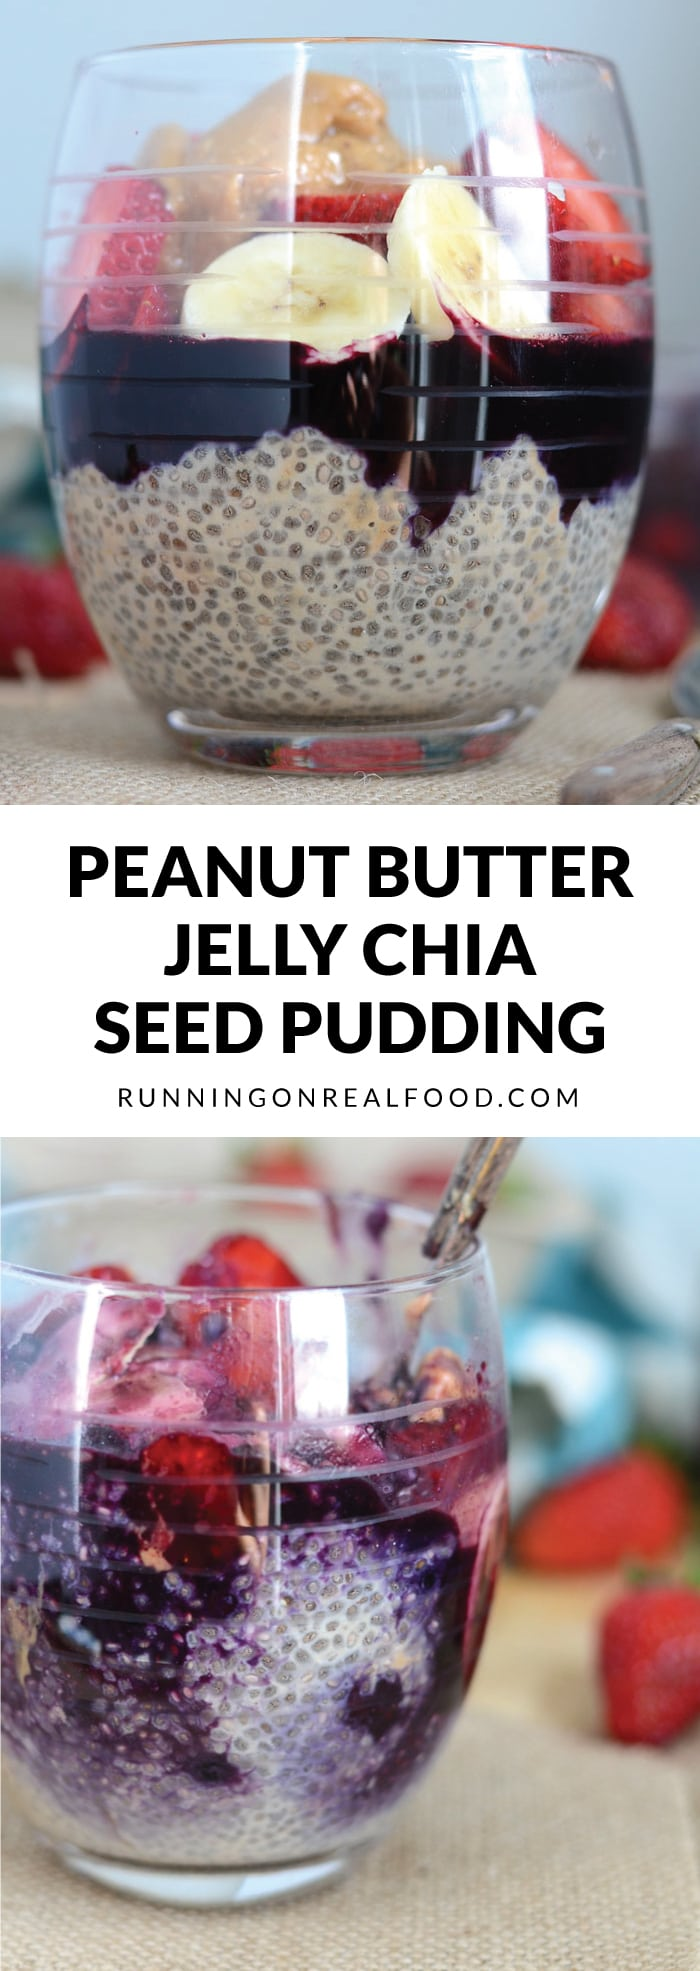 This delicious overnight Peanut Butter Jelly Chia Seed Pudding is easy to make, completely vegan and tastes like dessert! High in protein, healthy fats, vitamins, minerals and antioxidants. SO YUMMY!